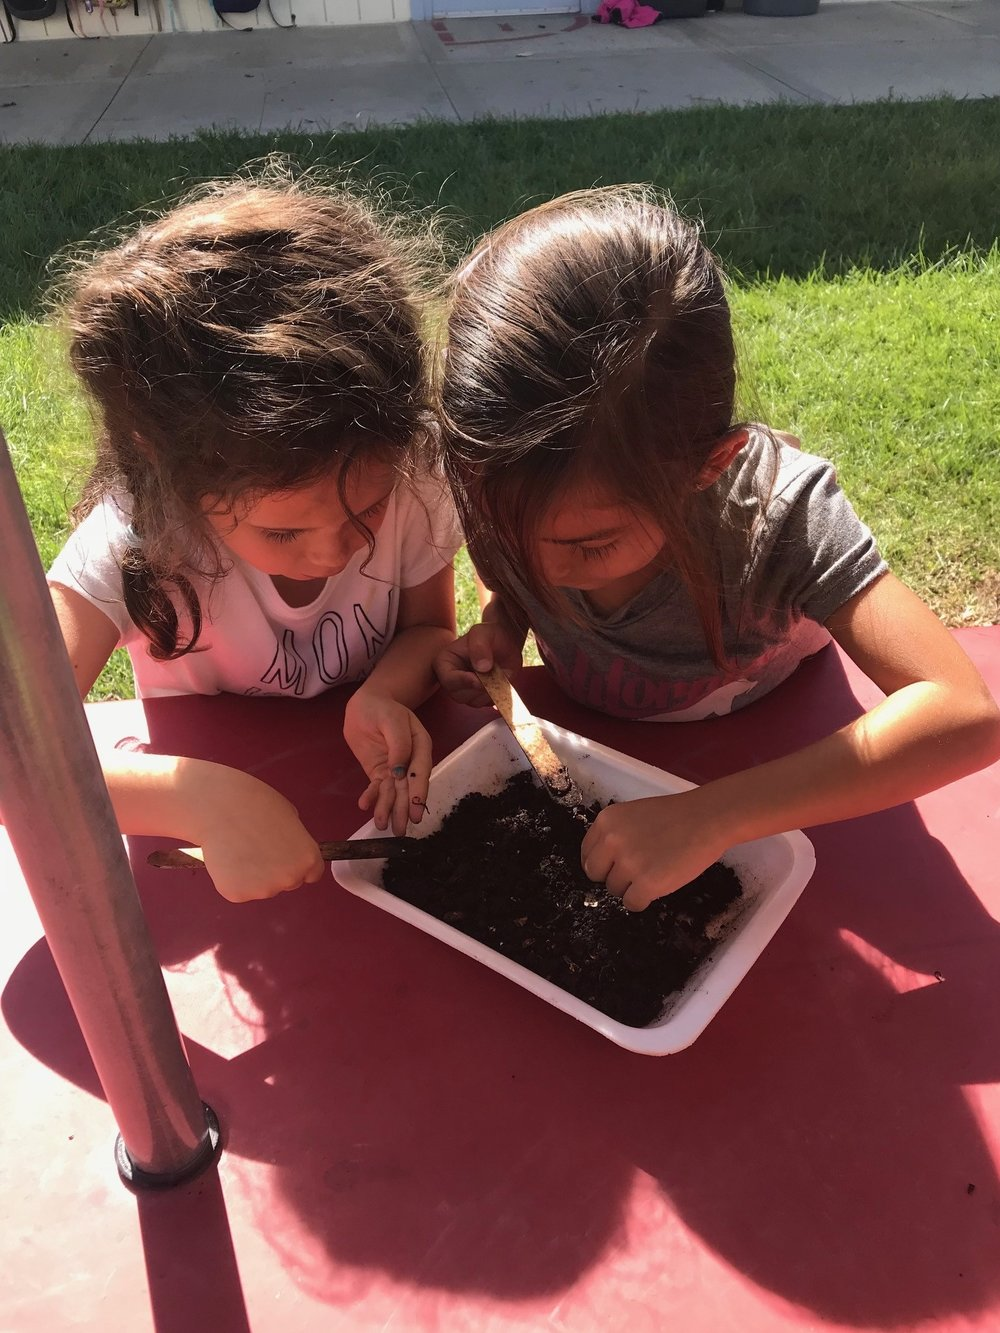 As a teacher, what brings Estefani great joy is finding ways to make learning fun and interactive for her students. Here are two of her kindergarten students getting their hands dirty during a lesson.